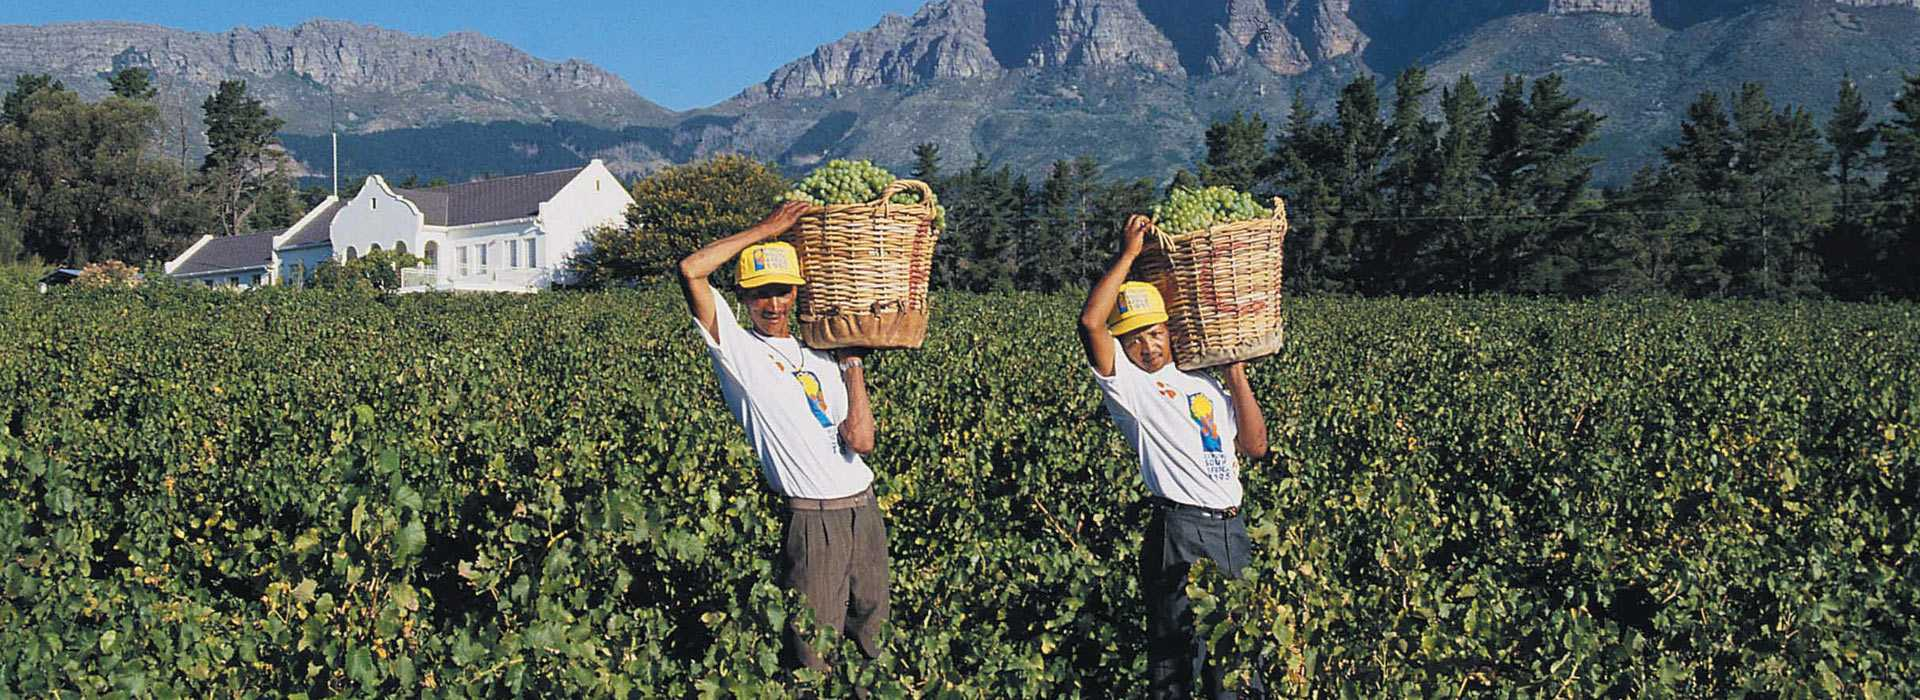 Harvesting Grapes In The Winelands